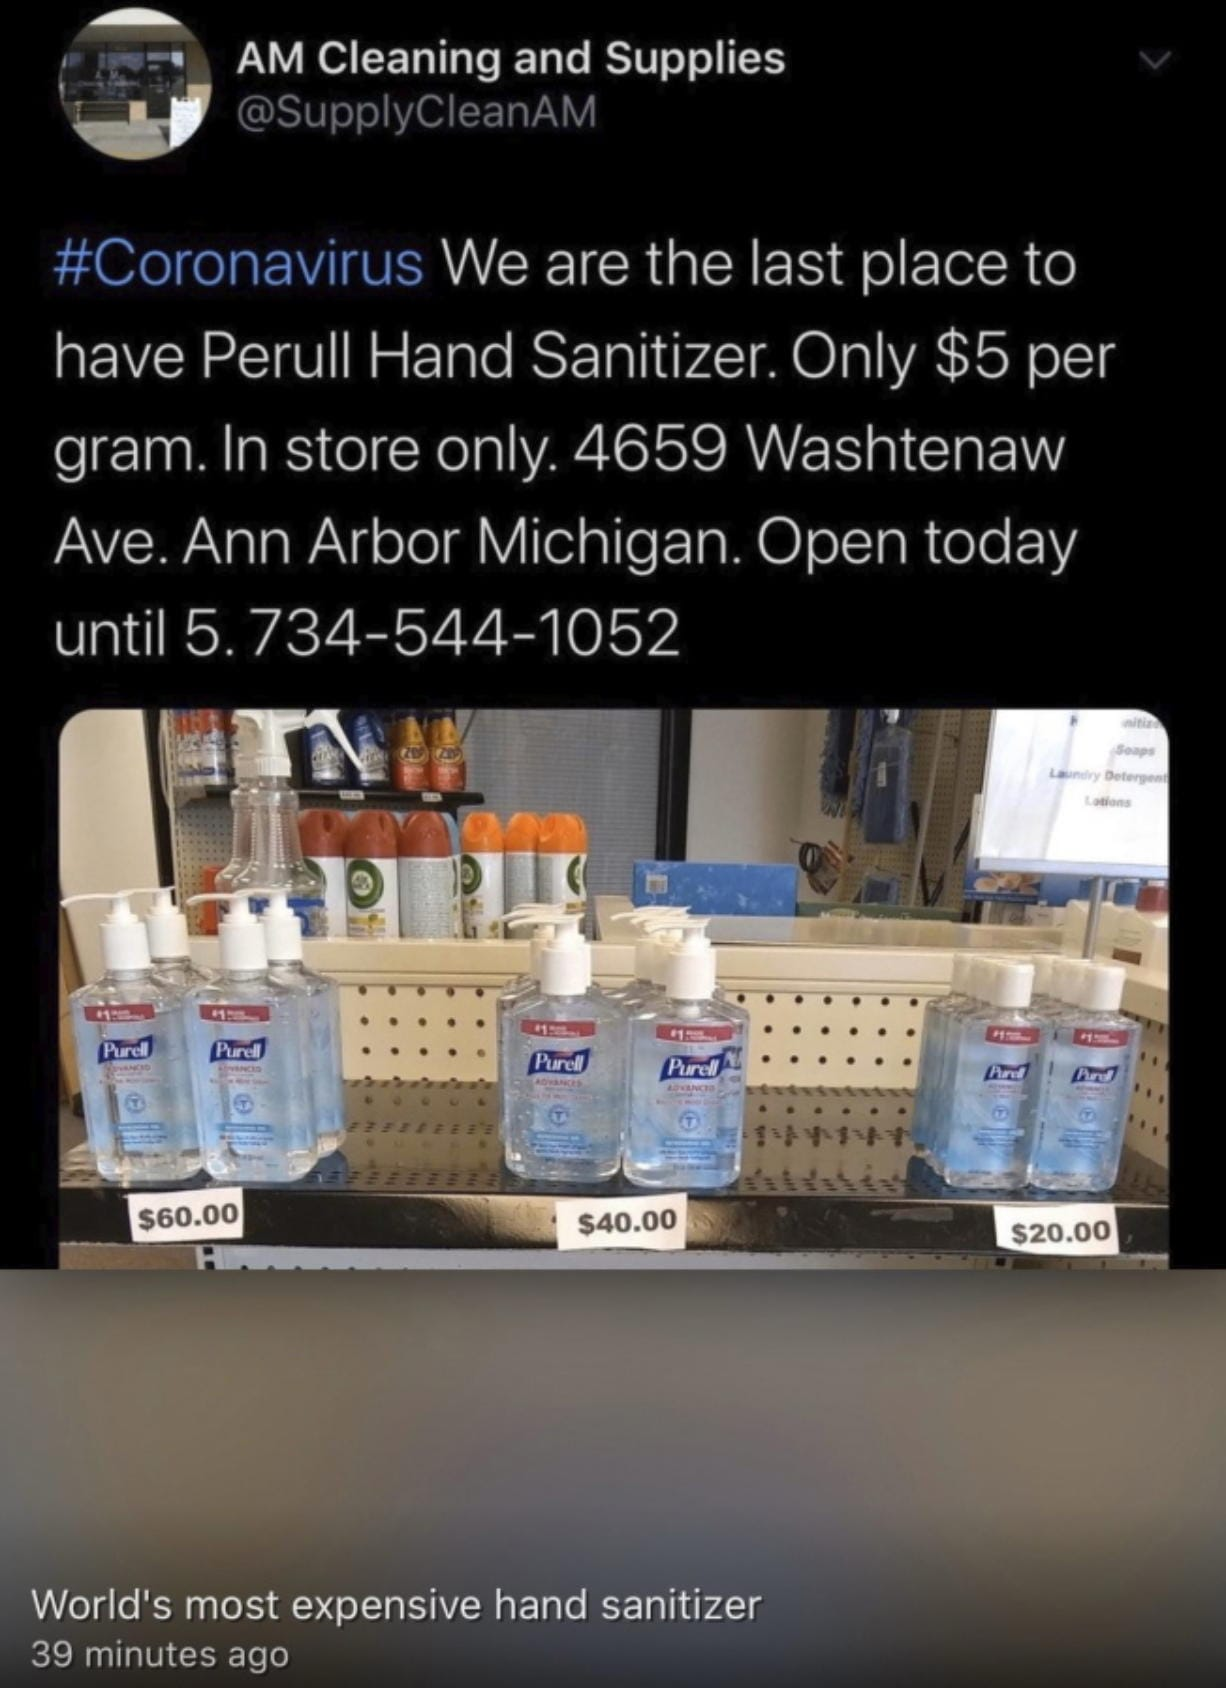 A screengrab from the Twitter account of A.M. Cleaning and Supplies in Ann Arbor Mich., advertising Purell hand sanitizer. (Michigan attorney general's office)